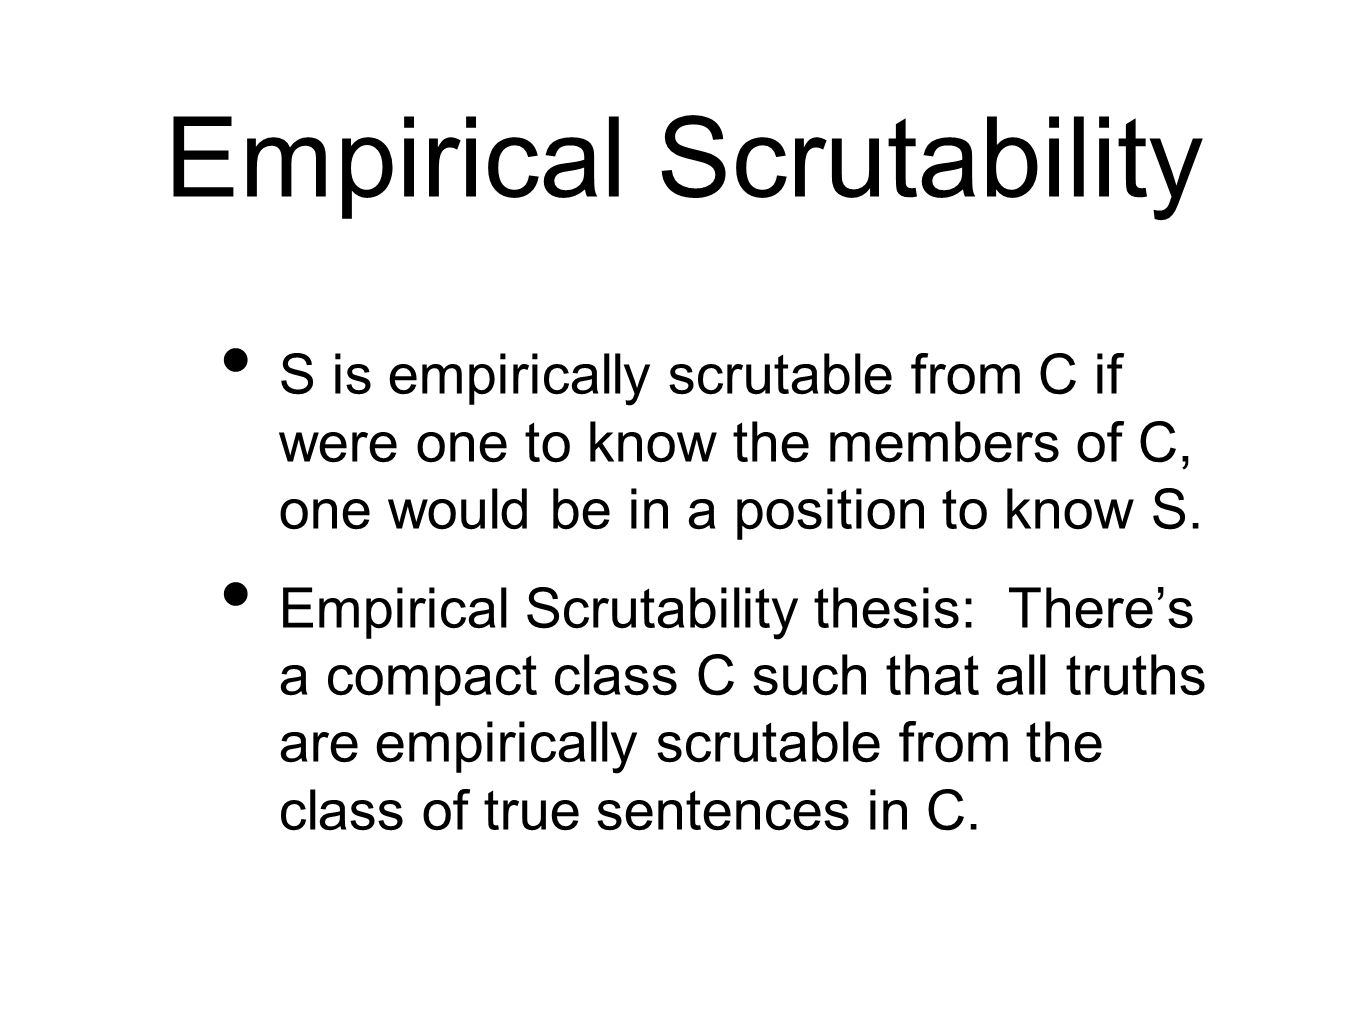 Empirical Scrutability S is empirically scrutable from C if were one to know the members of C, one would be in a position to know S.